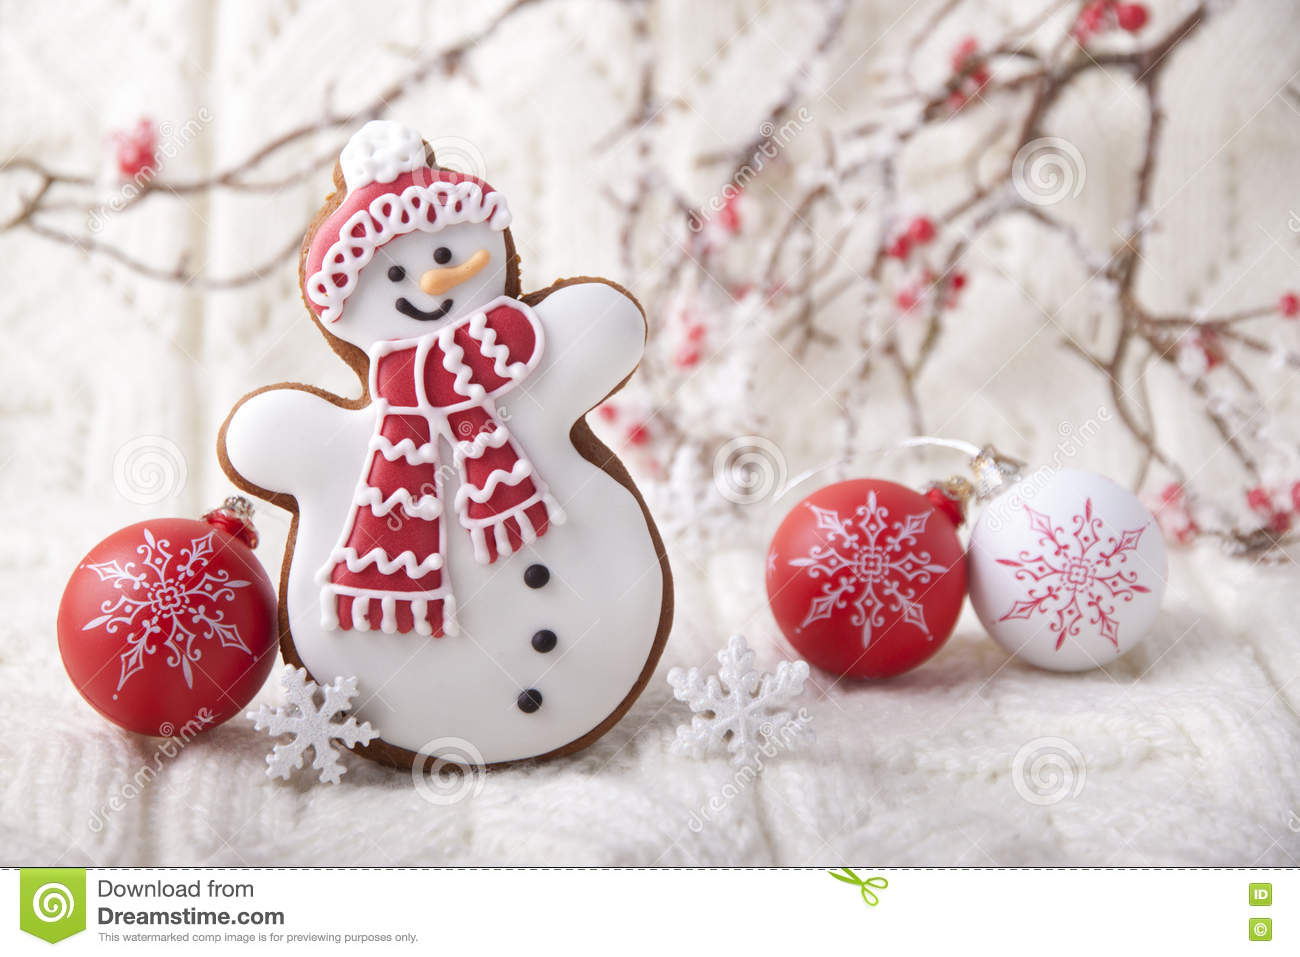 Christmas background with gingerbread in the form a snowman